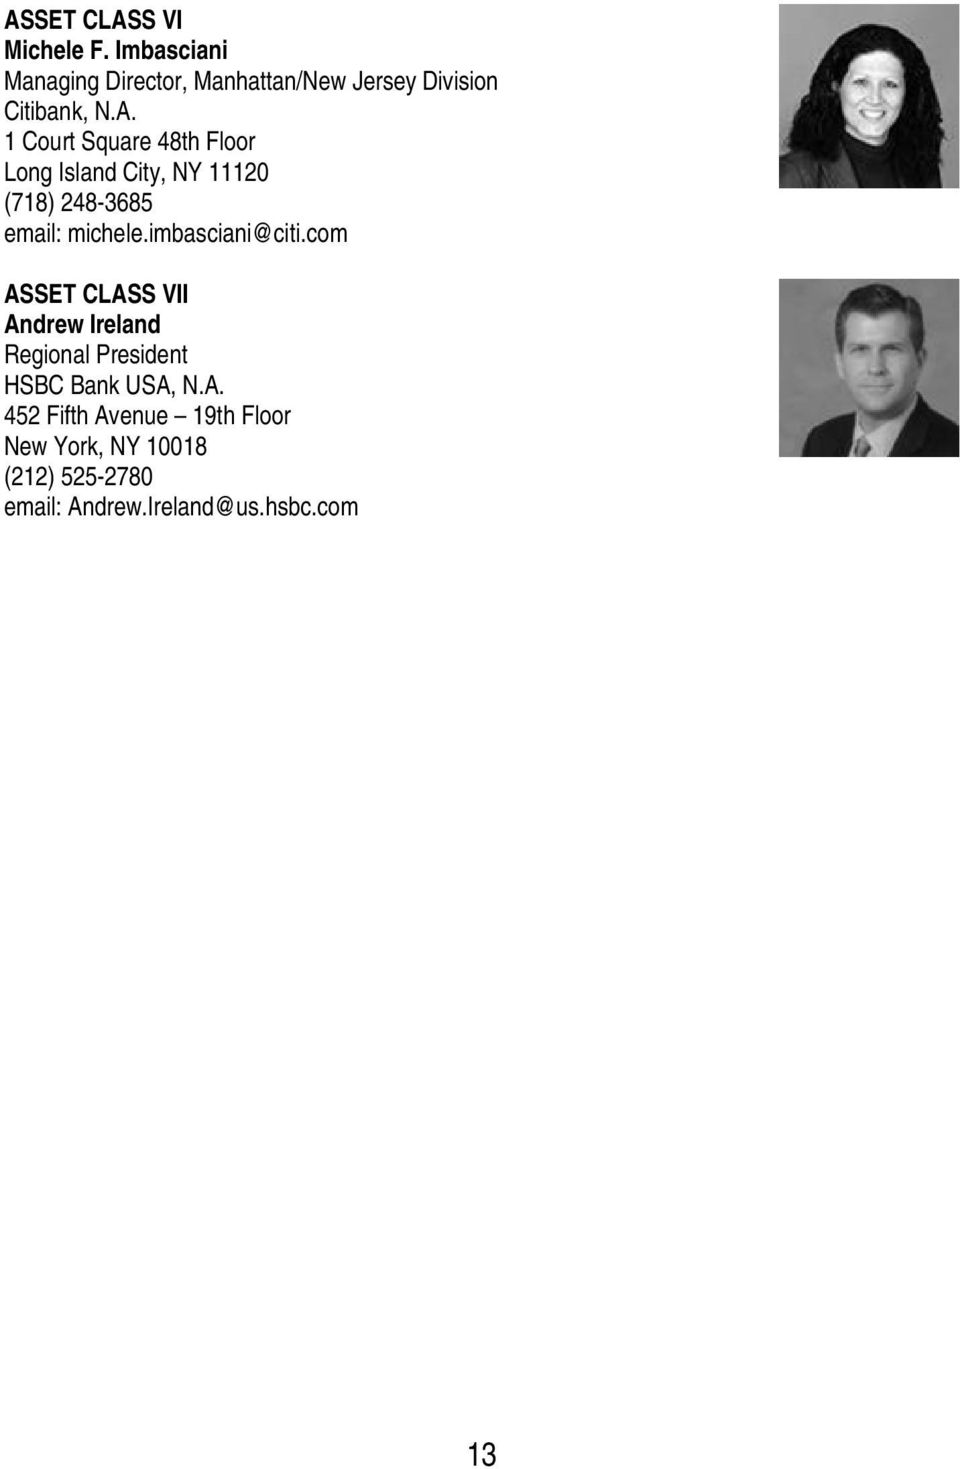 New York Bankers Association Directory  Main Number Address